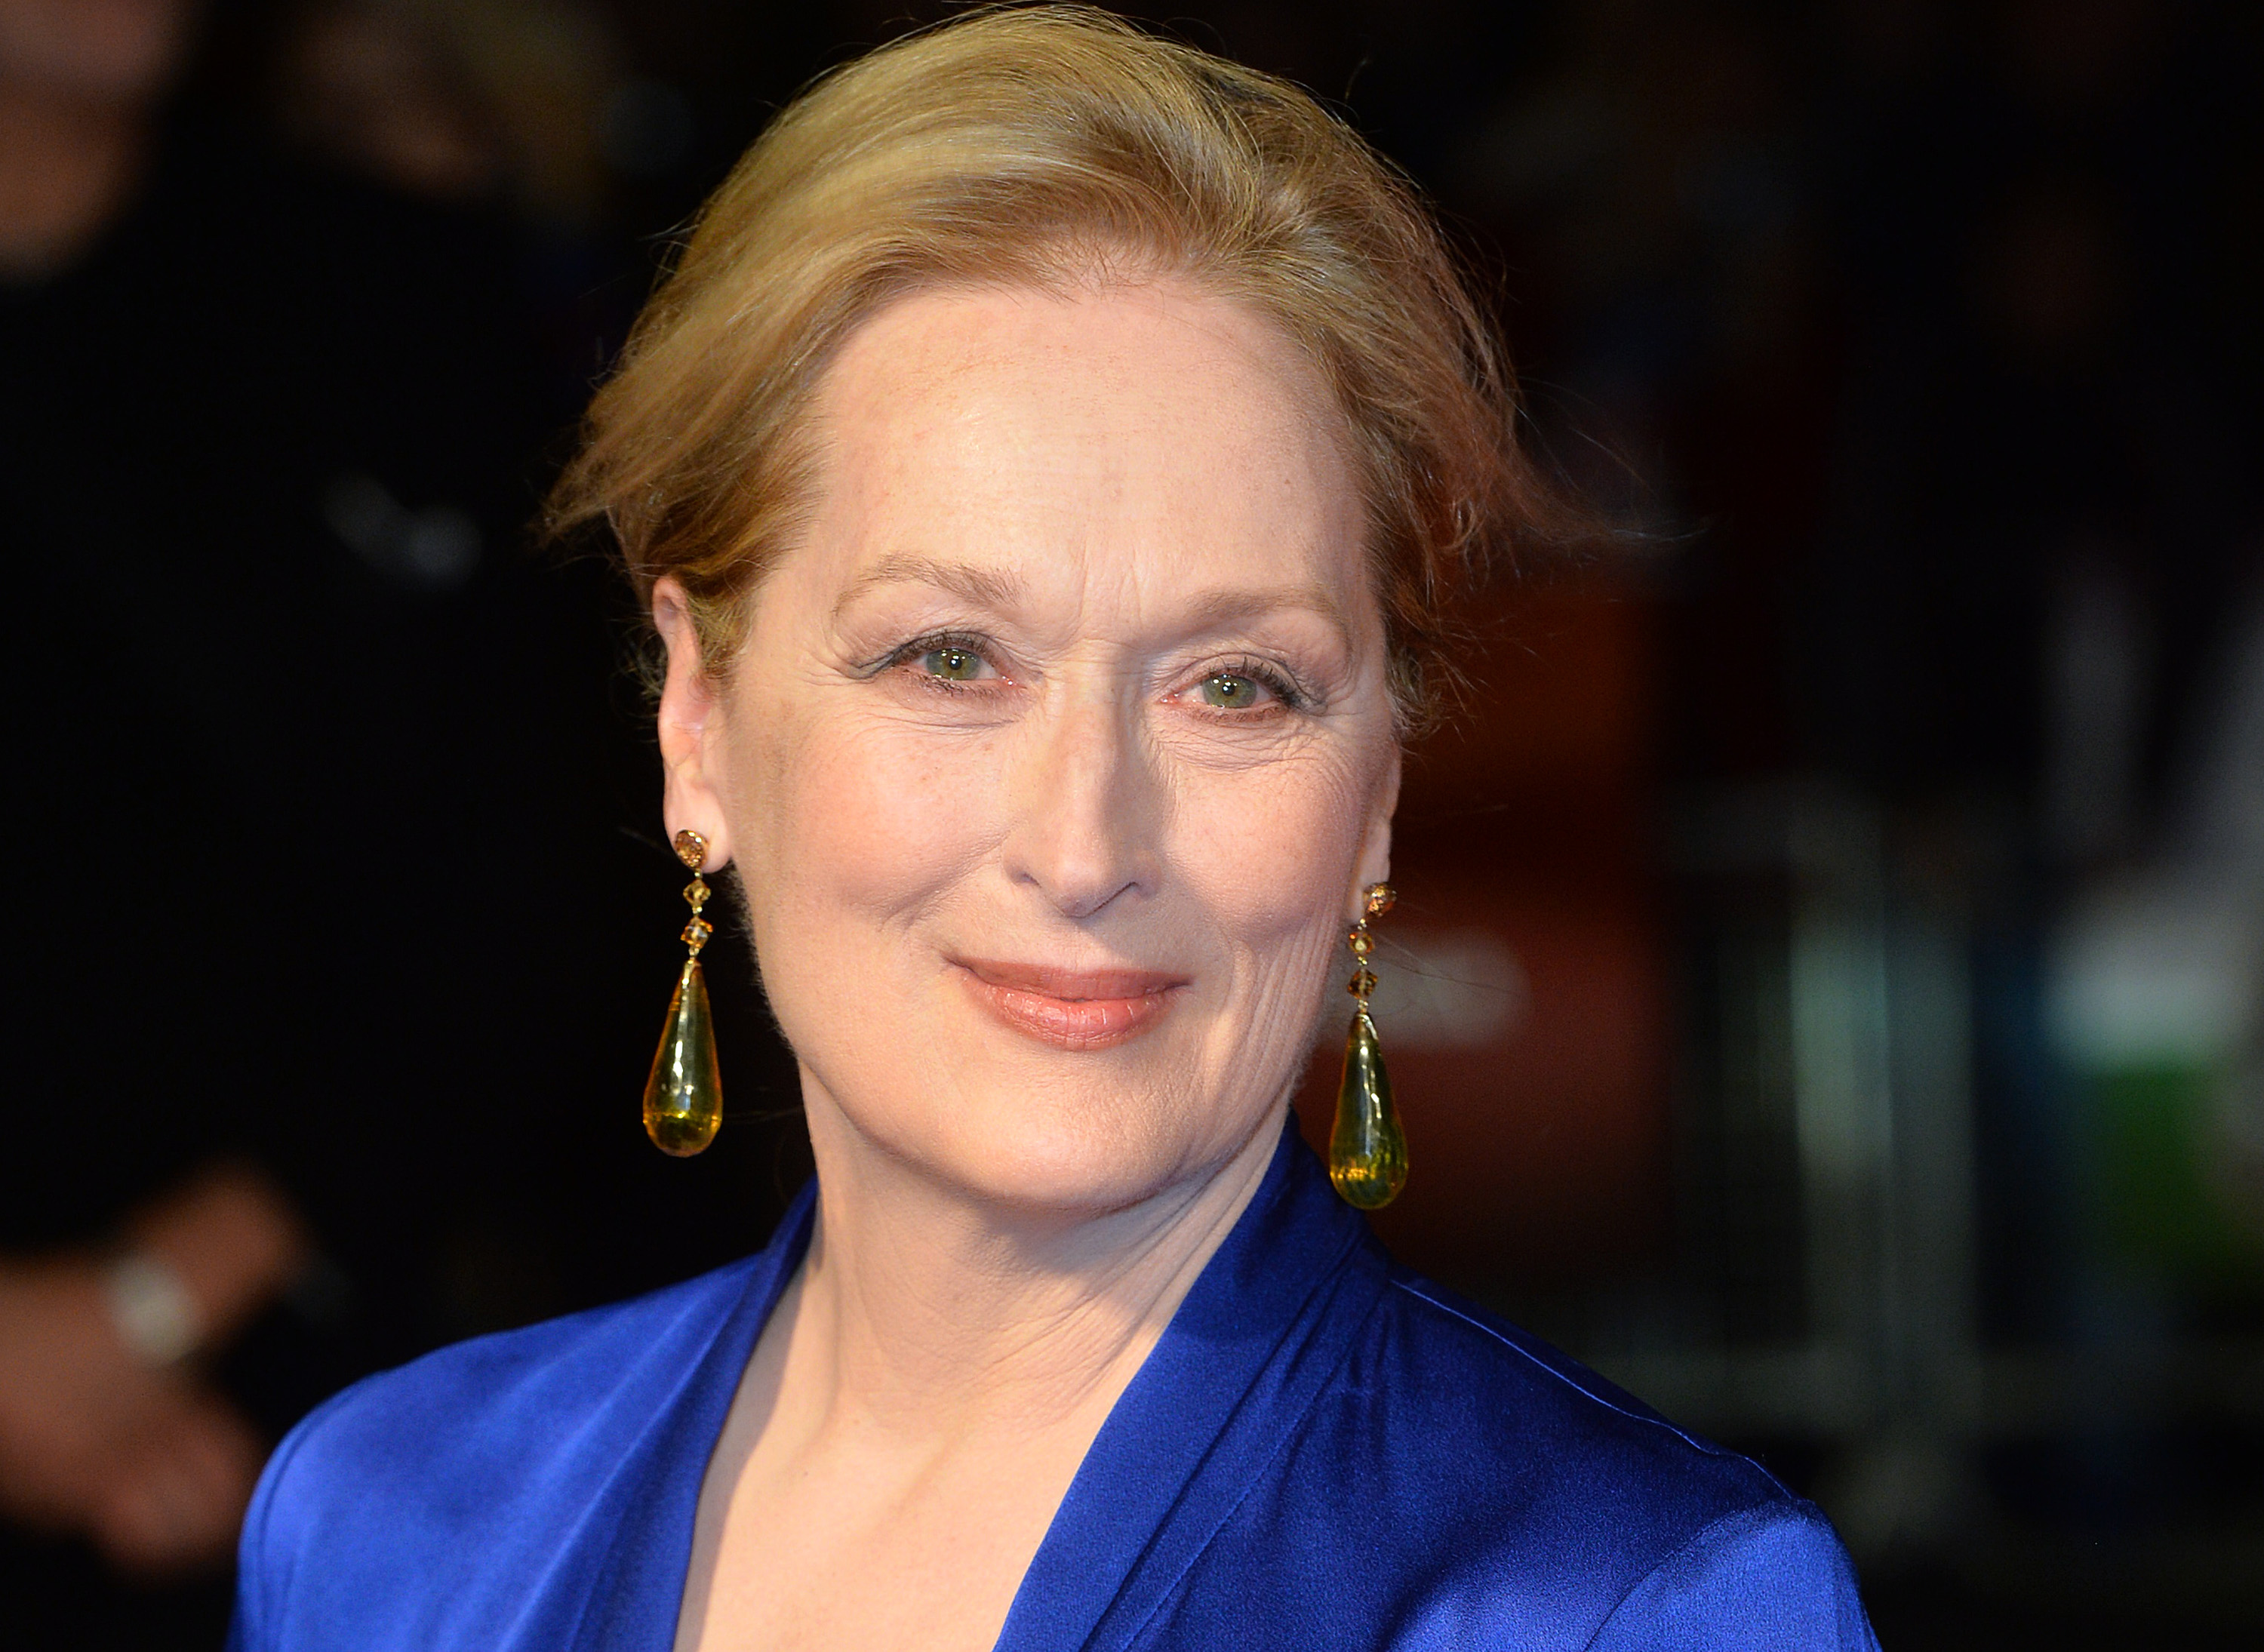 Meryl Streep at the screening of 'Suffragette' on the opening night of the BFI London Film Festival on Oct. 7, 2015.